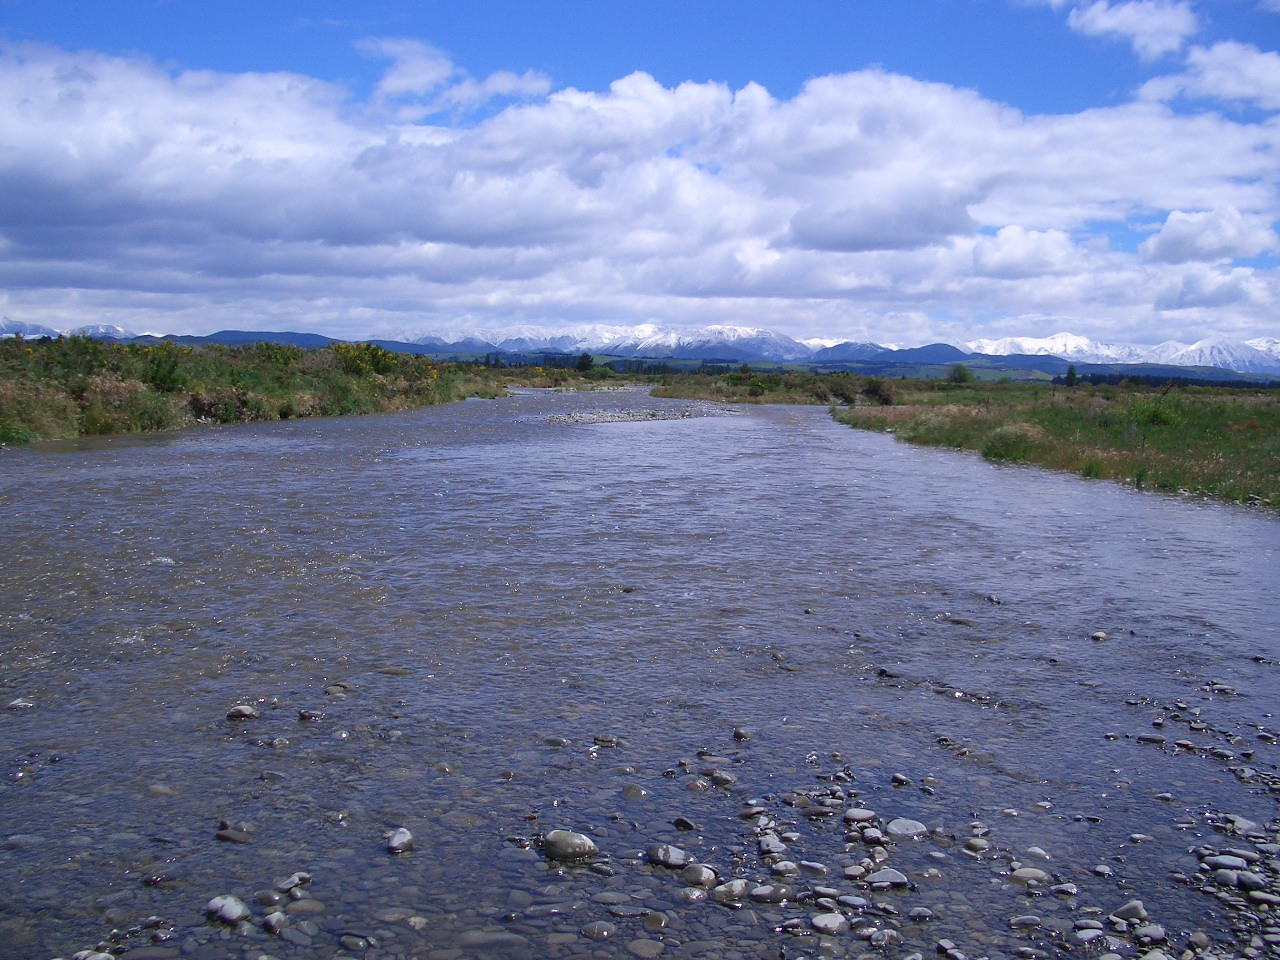 Image: New Zealand river water quality – good news or bad?